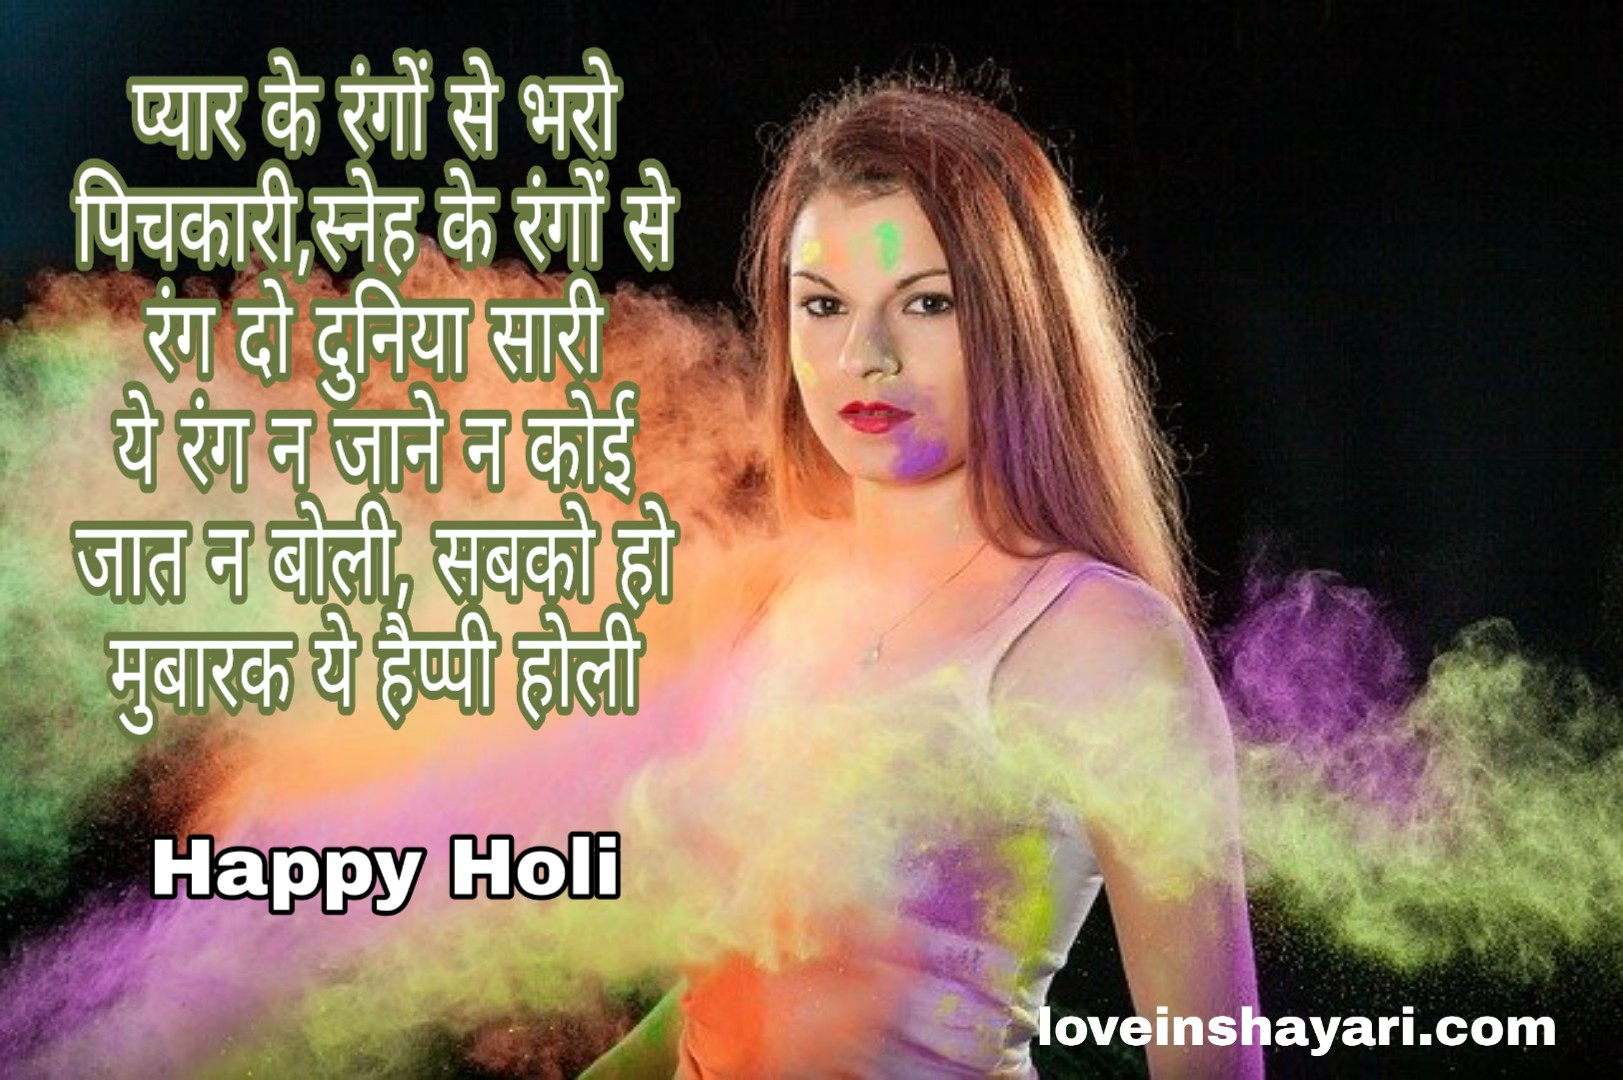 Photo of Happy Holi images 2020 hd